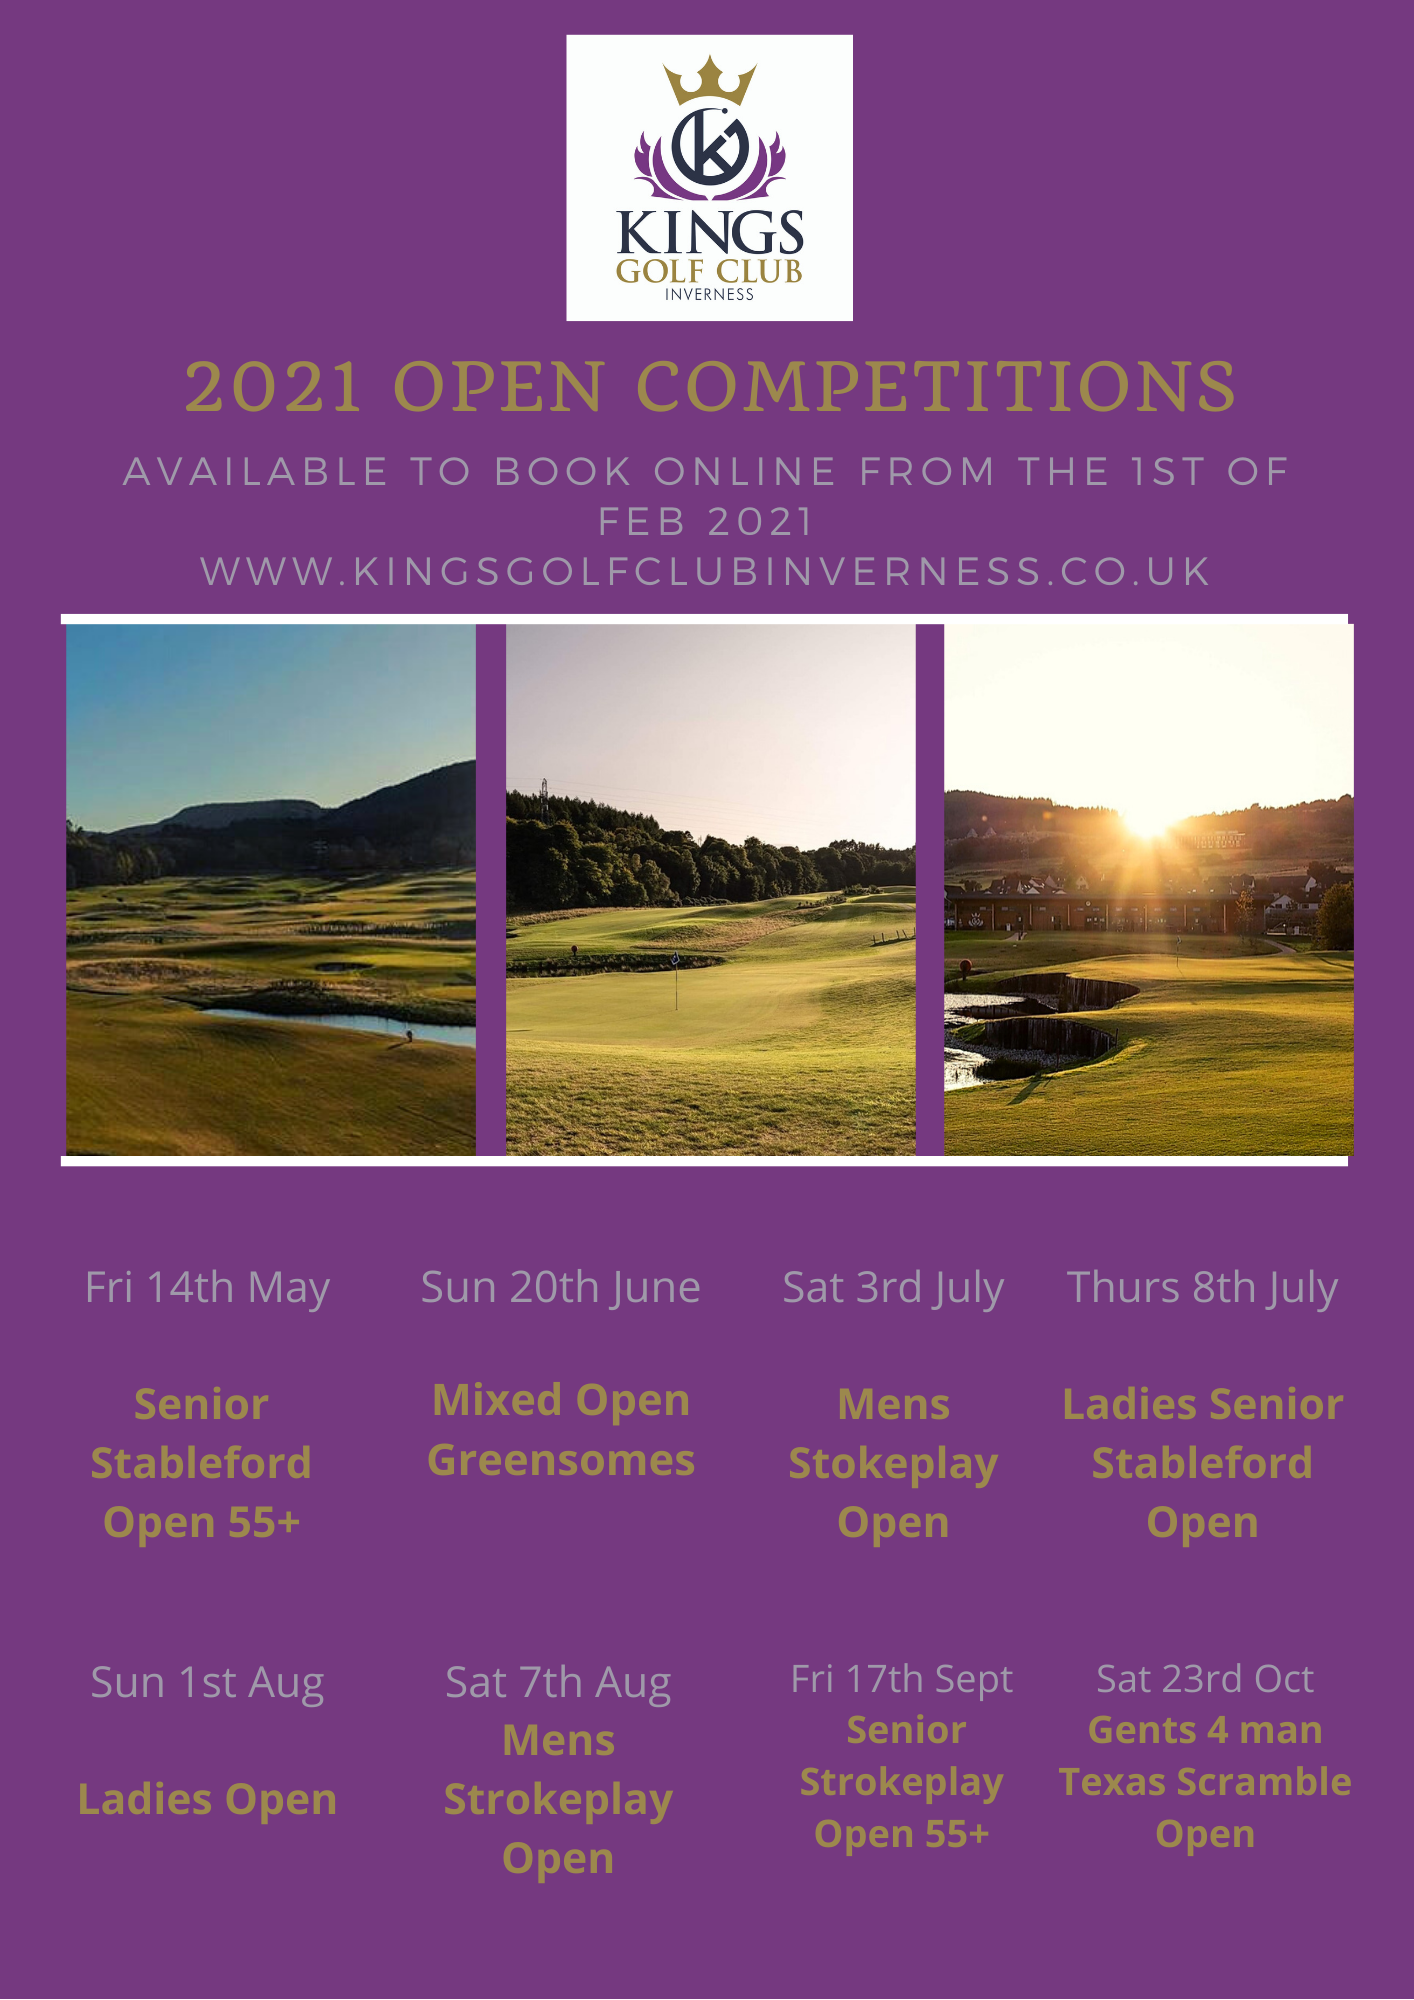 2021 Open Competitions Kings Golf Club Inverness